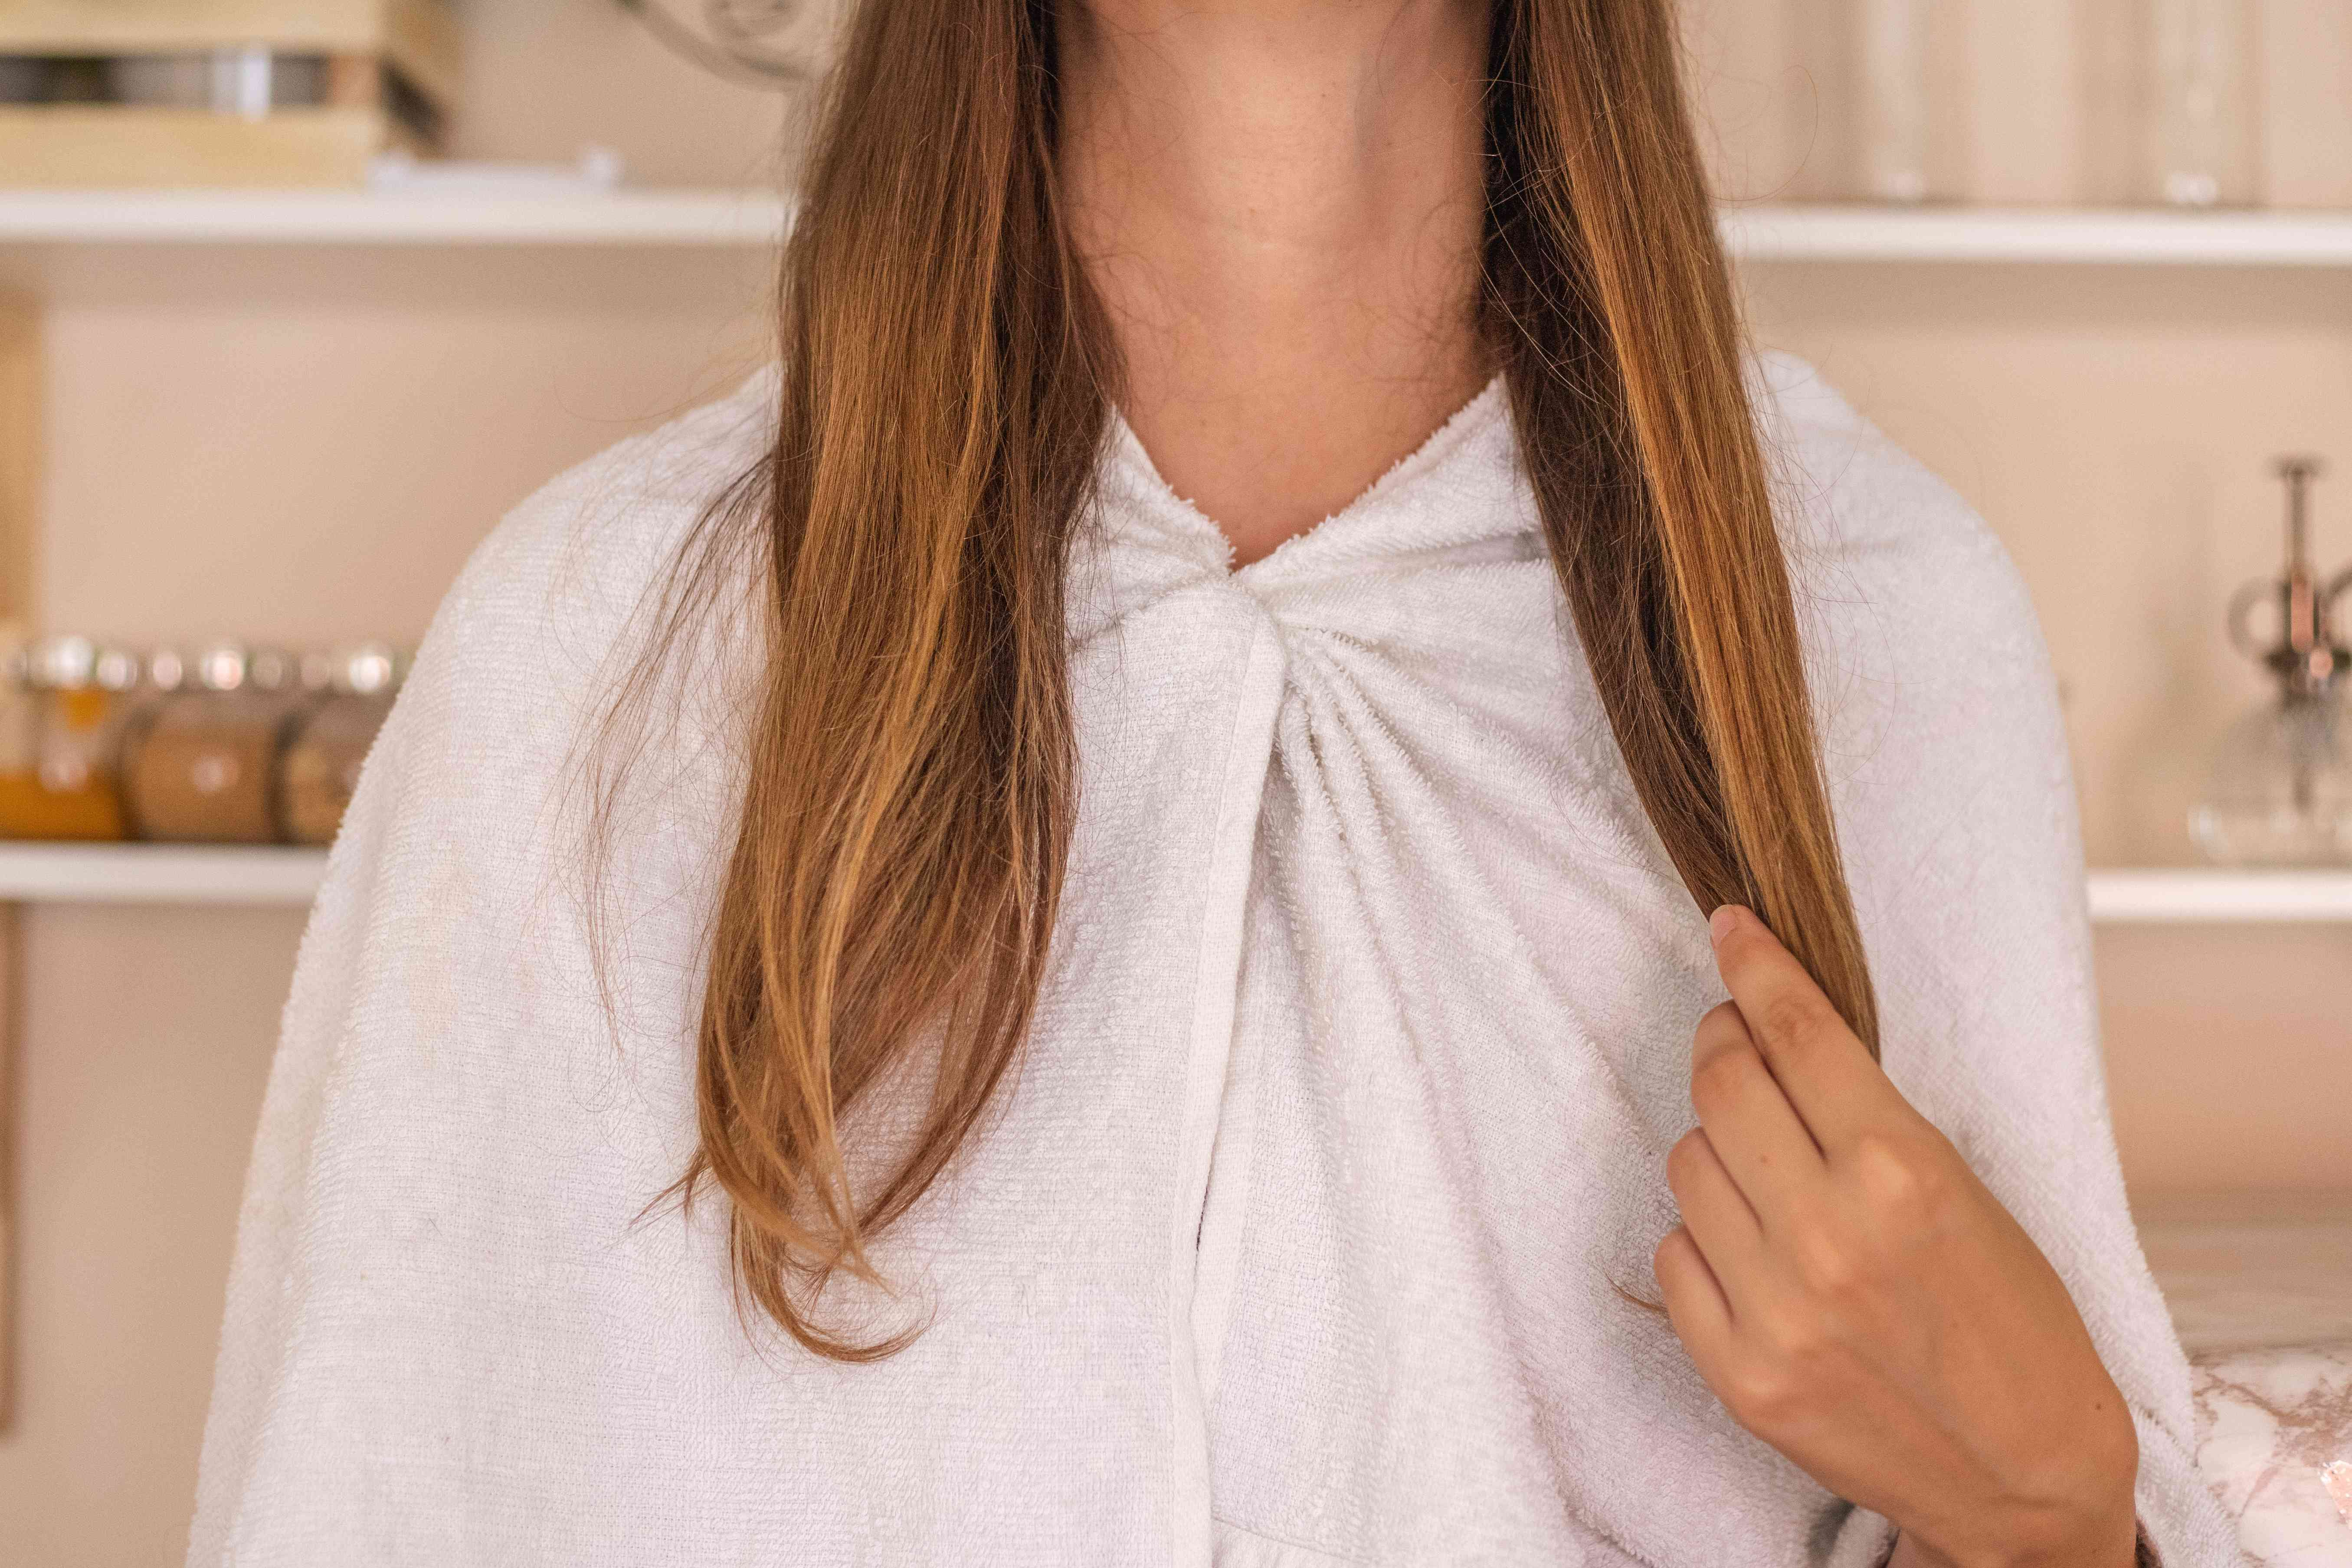 woman with towel wrapped around shoulders applies olive oil mask to ends of long hair